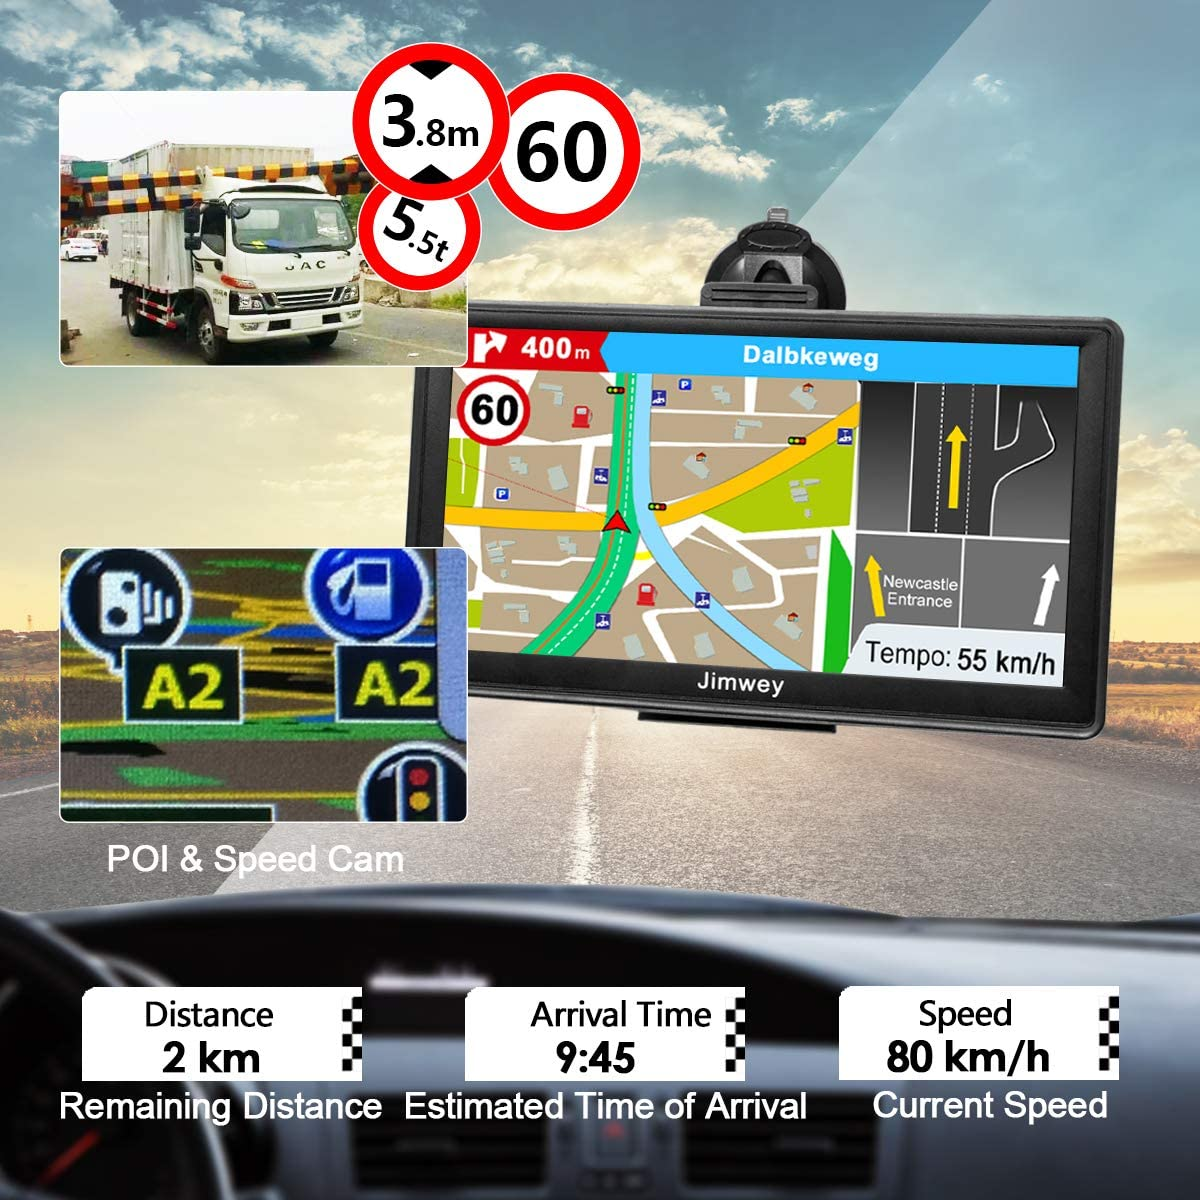 SAT NAV GPS Navigation System Jimwey Inch 16GB Latest 2019 Maps Car Truck Lorry Satellite Navigator Device Full Europe with Lifetime Free Update with Post Code Search Speed Camera Alert